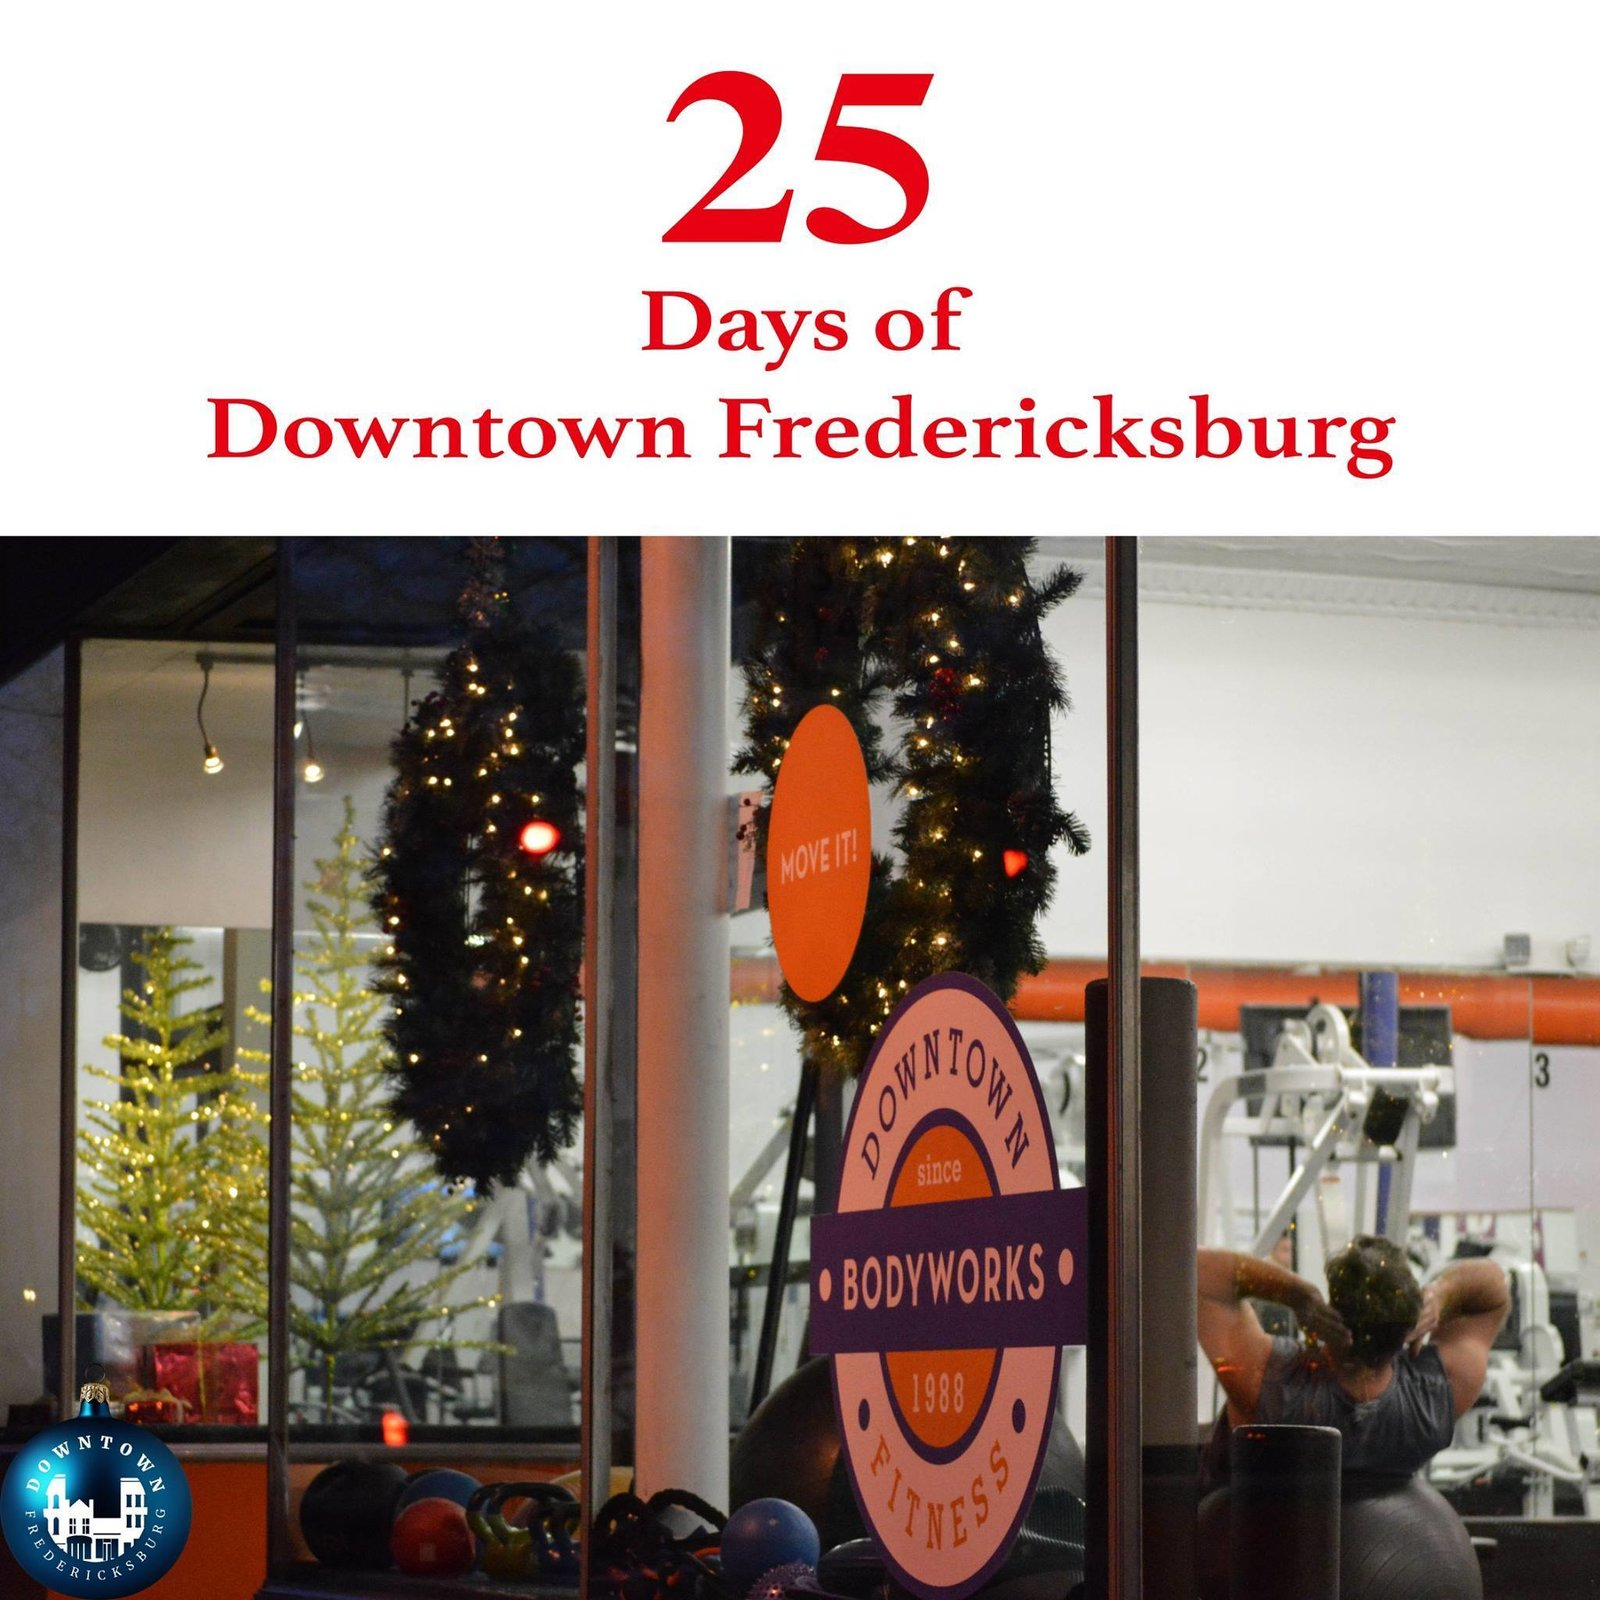 Gift Sixteen Health and happiness come with a gym membership to Bodyworks Downtown Athletic Club Fredericksburg. This gift won't go unappreciated. https://www.facebook.com/DowntownFredericksburg/  25 Days of Downtown Fredericksburg